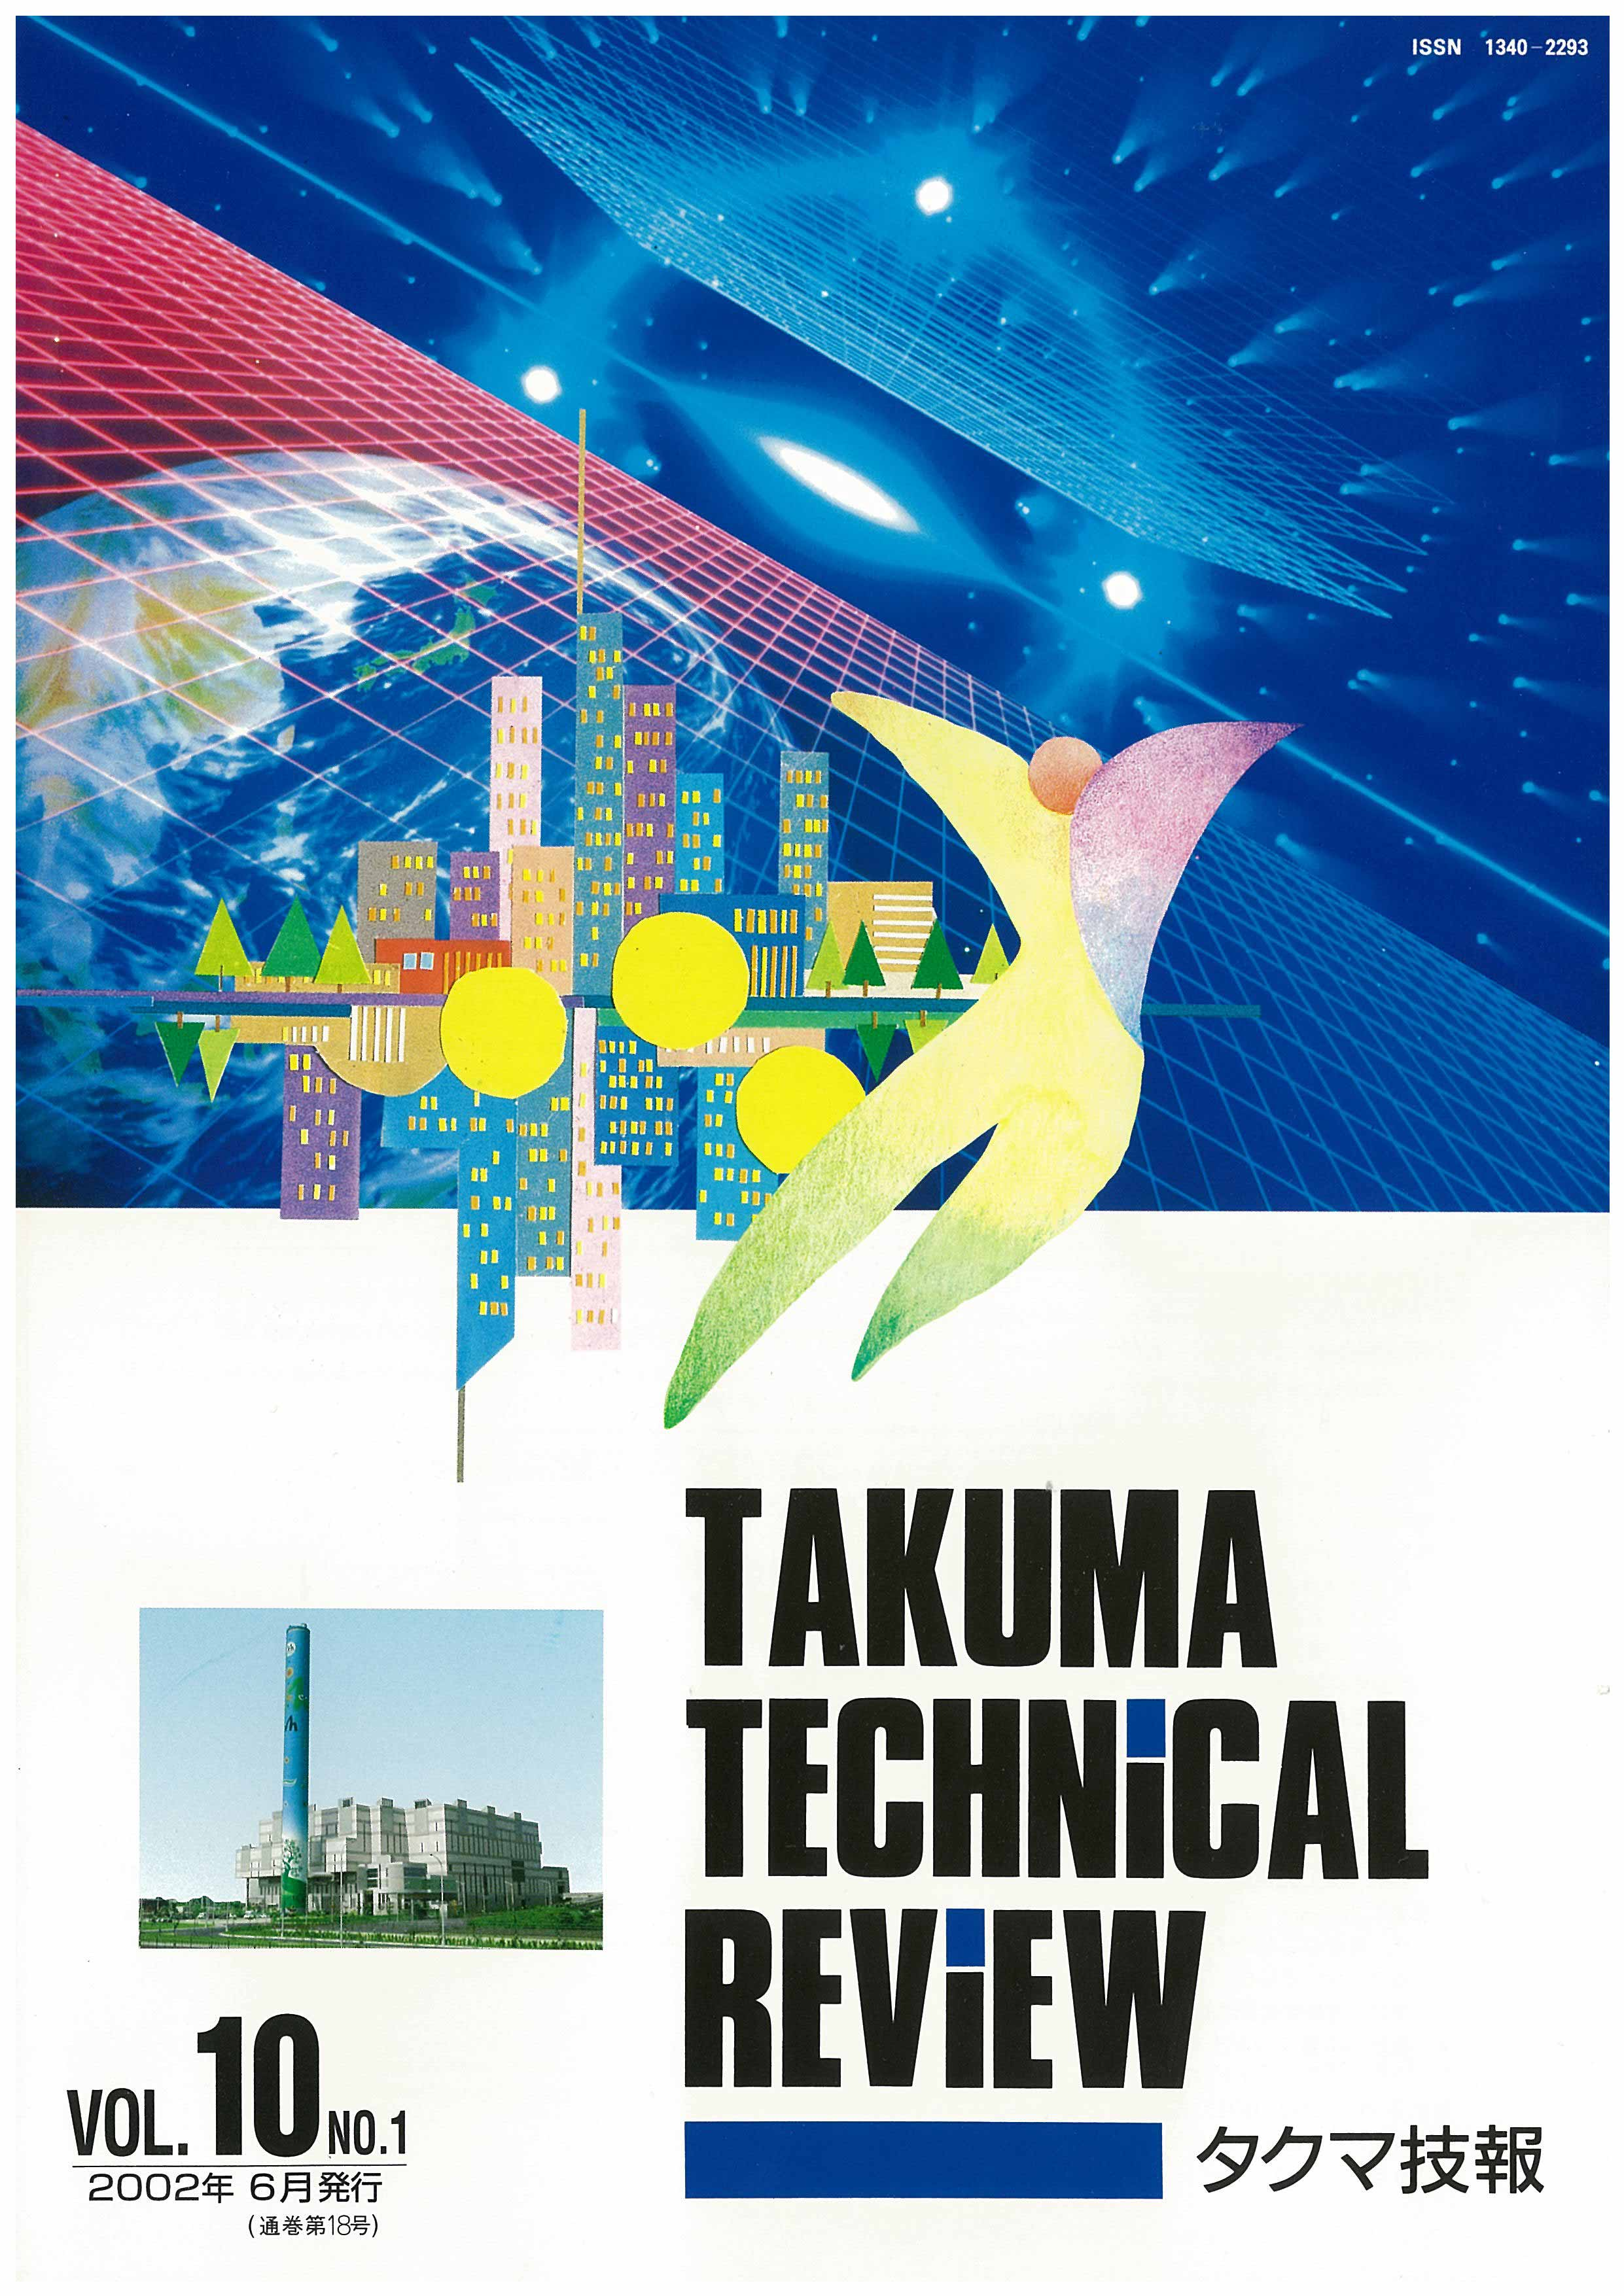 VOL.10 NO.1 (published in Jun-2002)